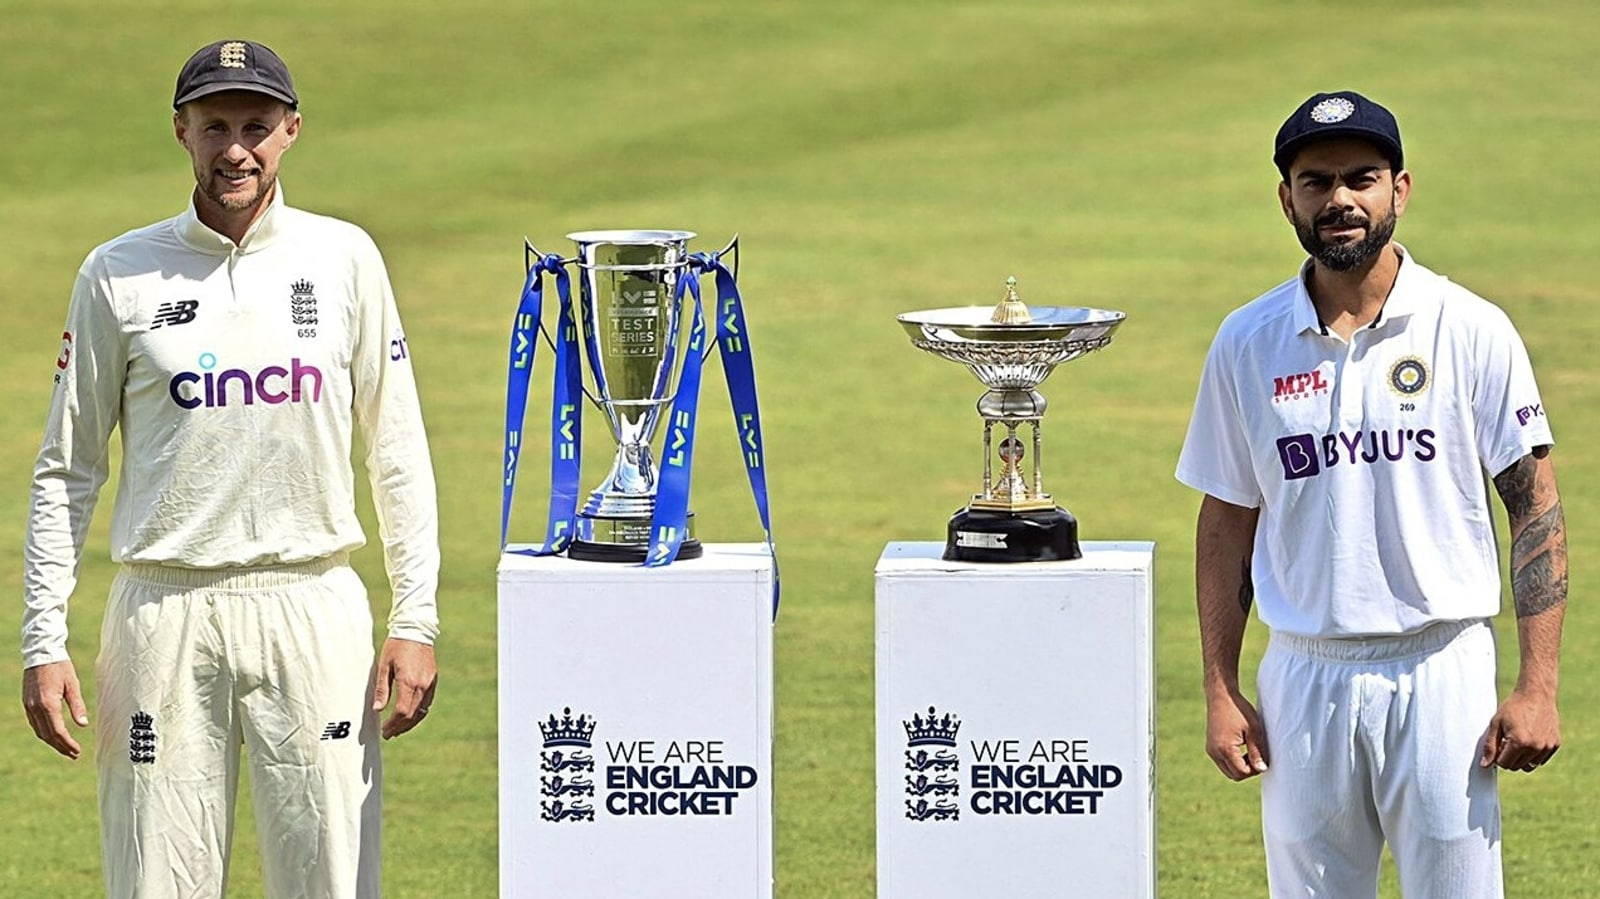 'Agree with Rahul Dravid; this indeed is India's best chance of winning in England': Dilip Vengsarkar ahead of 1st Test - Hindustan Times